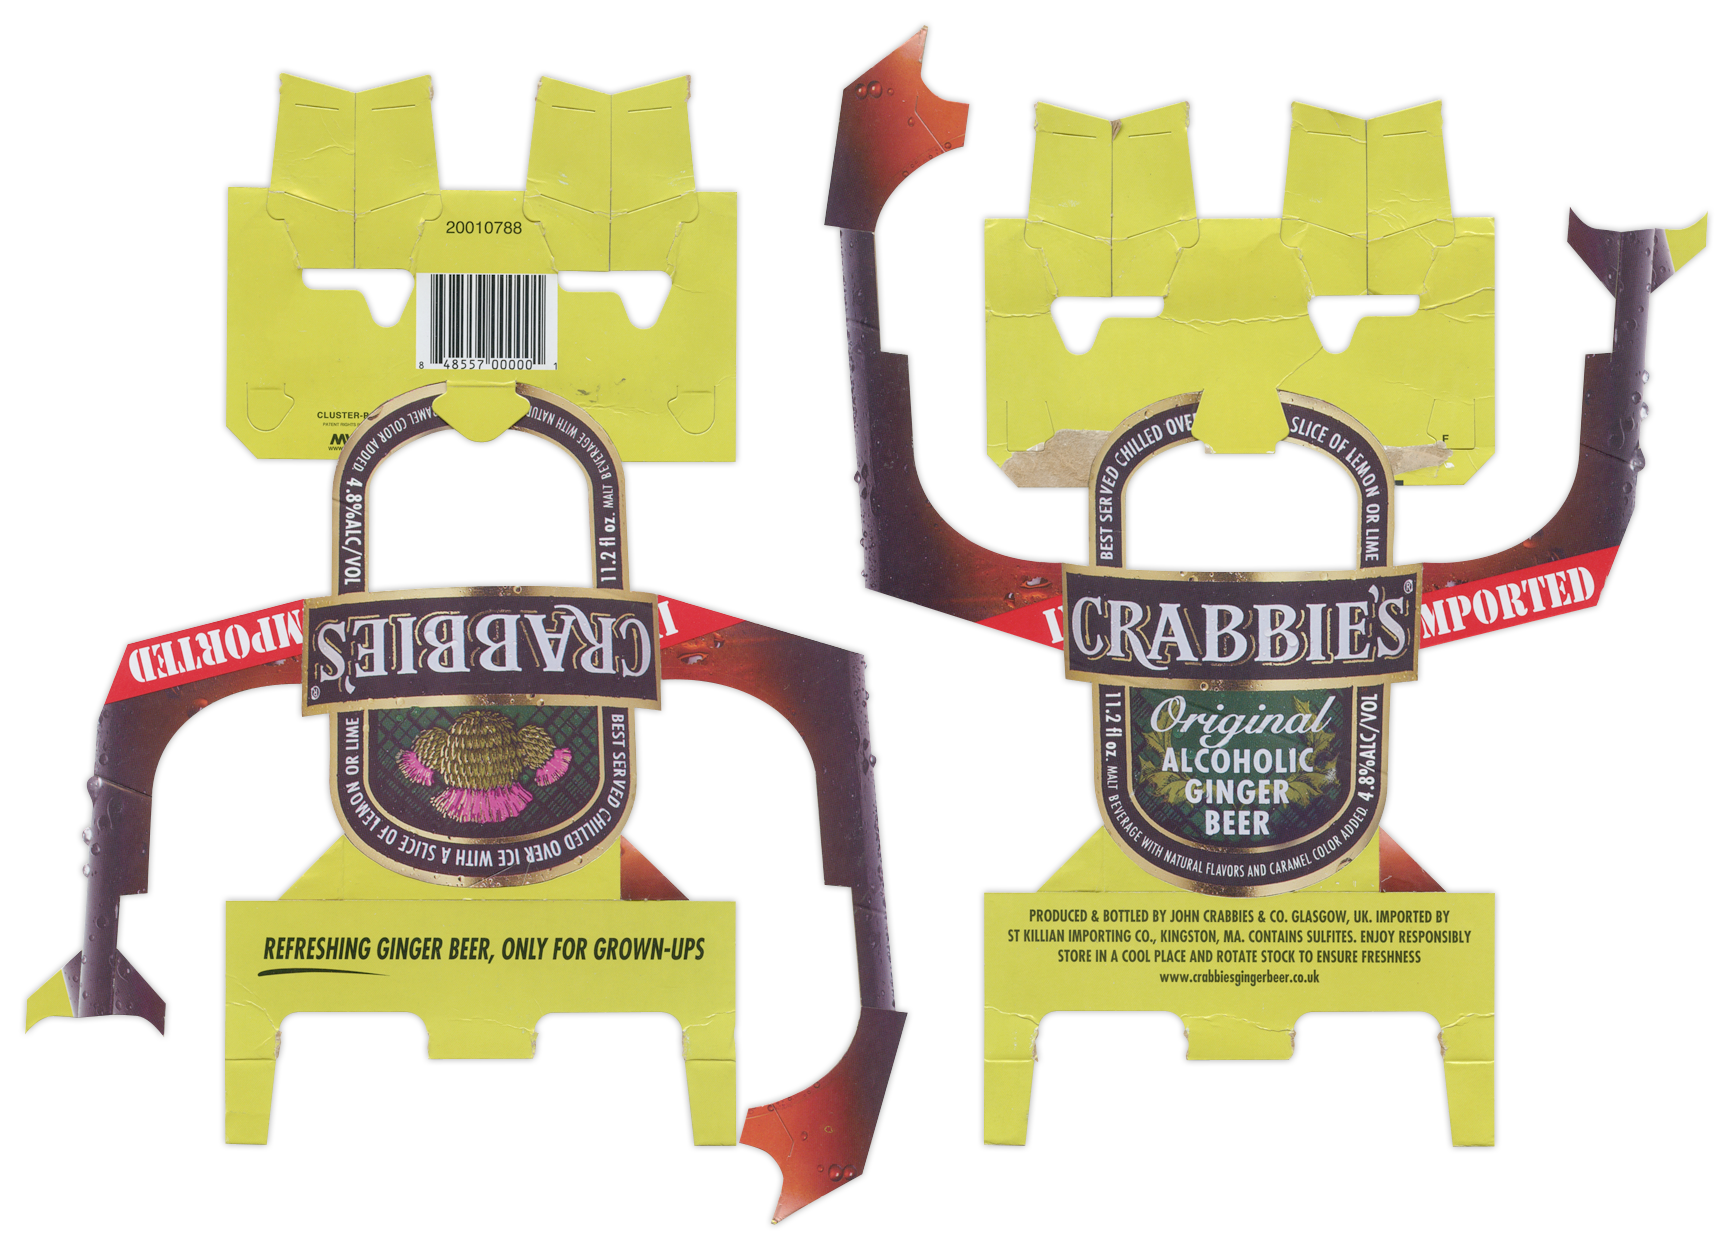 Crabbies Ginger Beer BoxBot